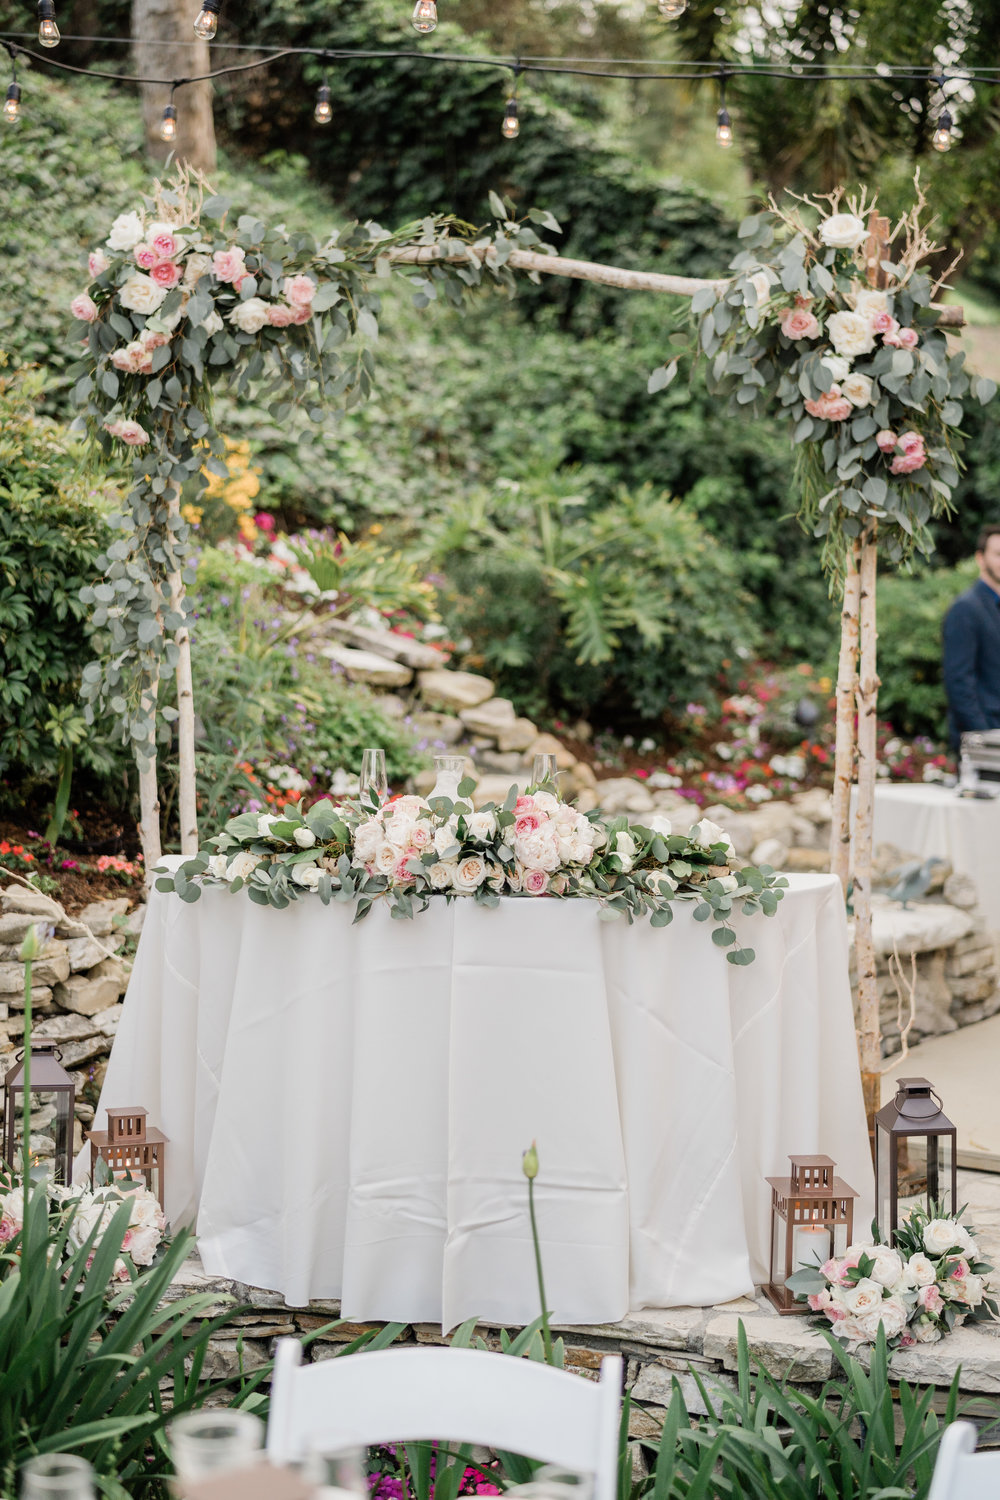 Brittany + Evan - Details - Hitched Photo65.JPG